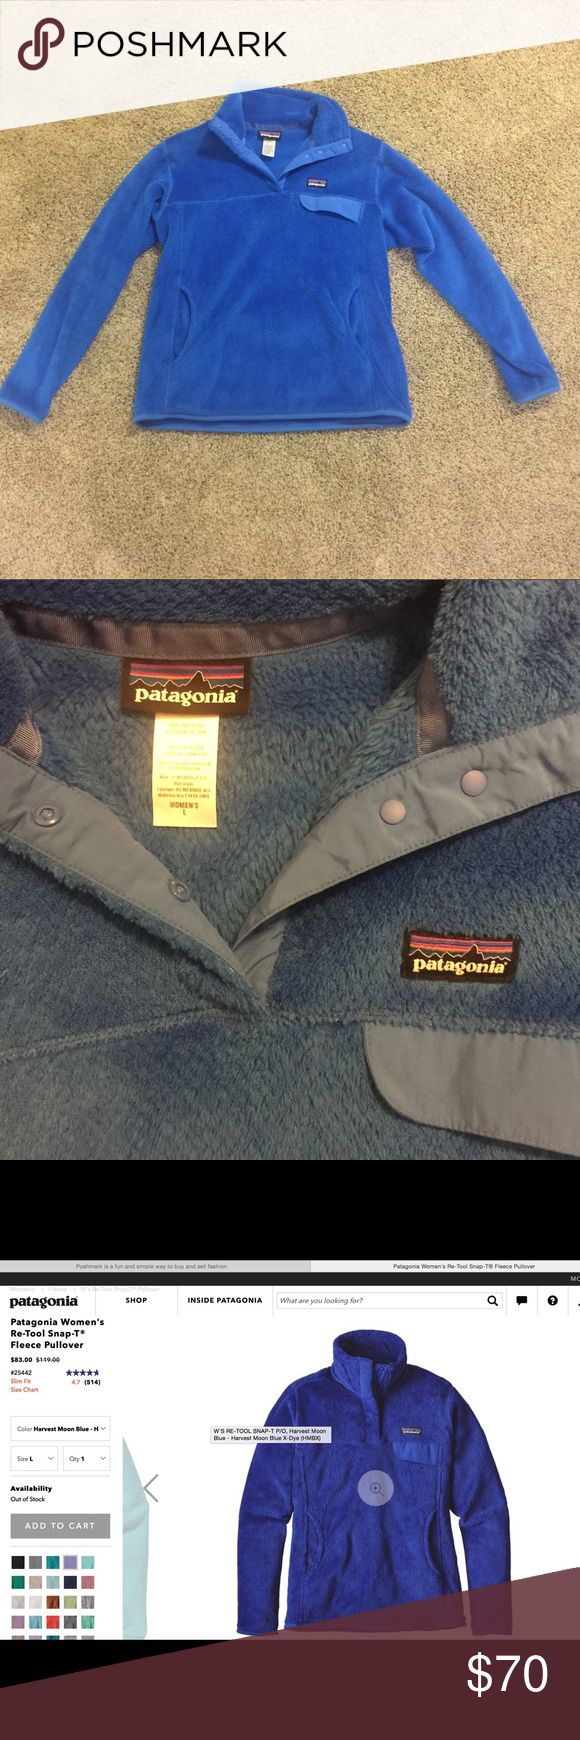 Women's Fleece Patagonia Large, in great condition Patagonia Jackets & Coats